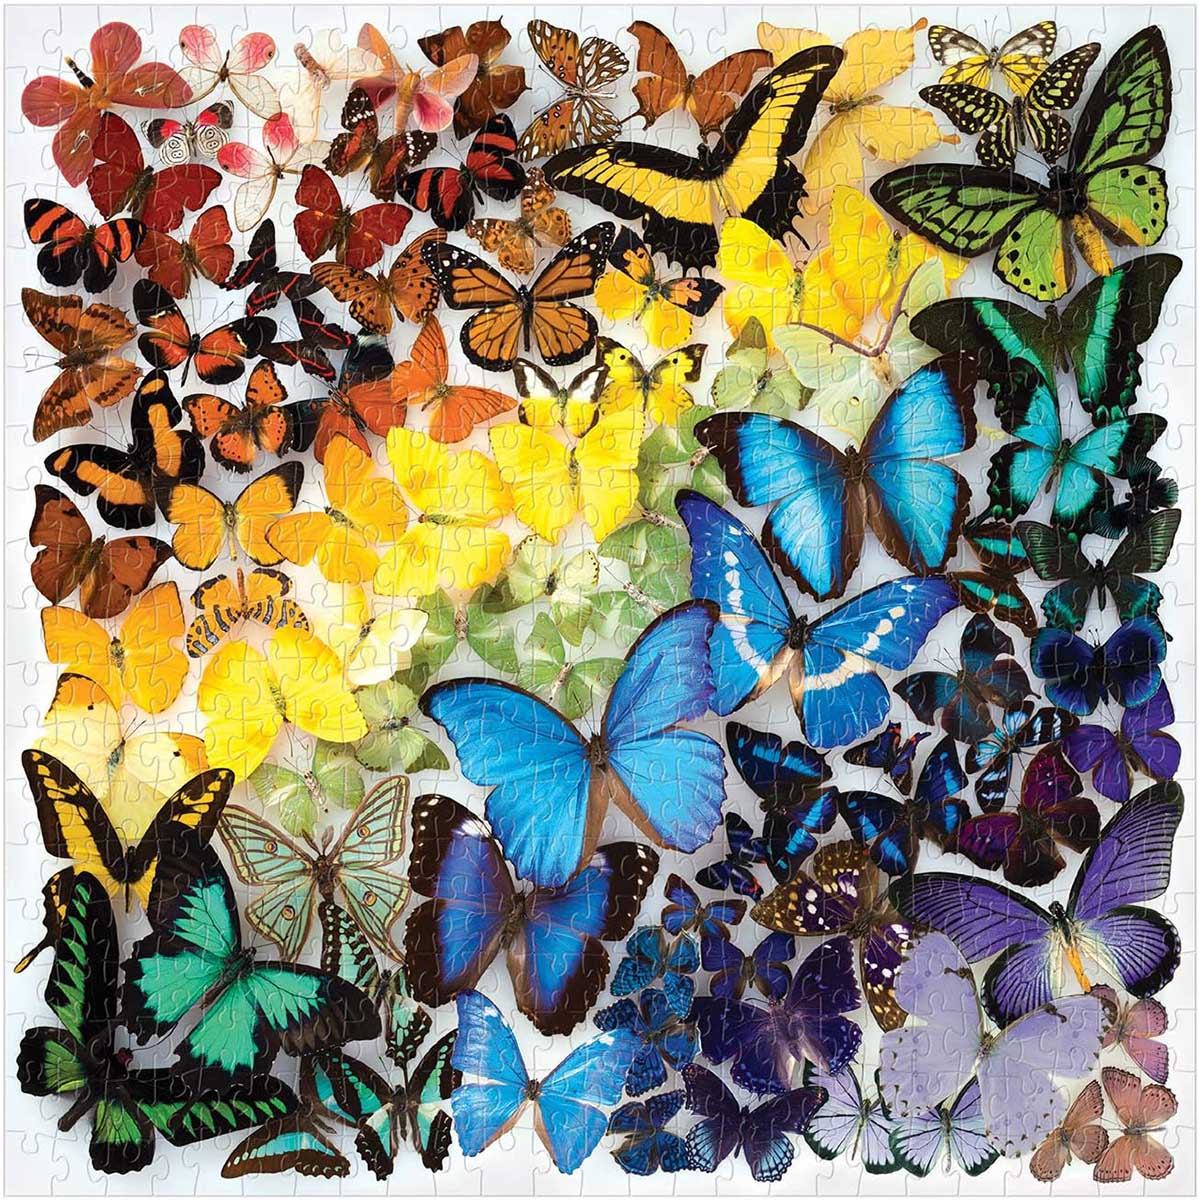 Rainbow Butterflies Butterflies and Insects Jigsaw Puzzle